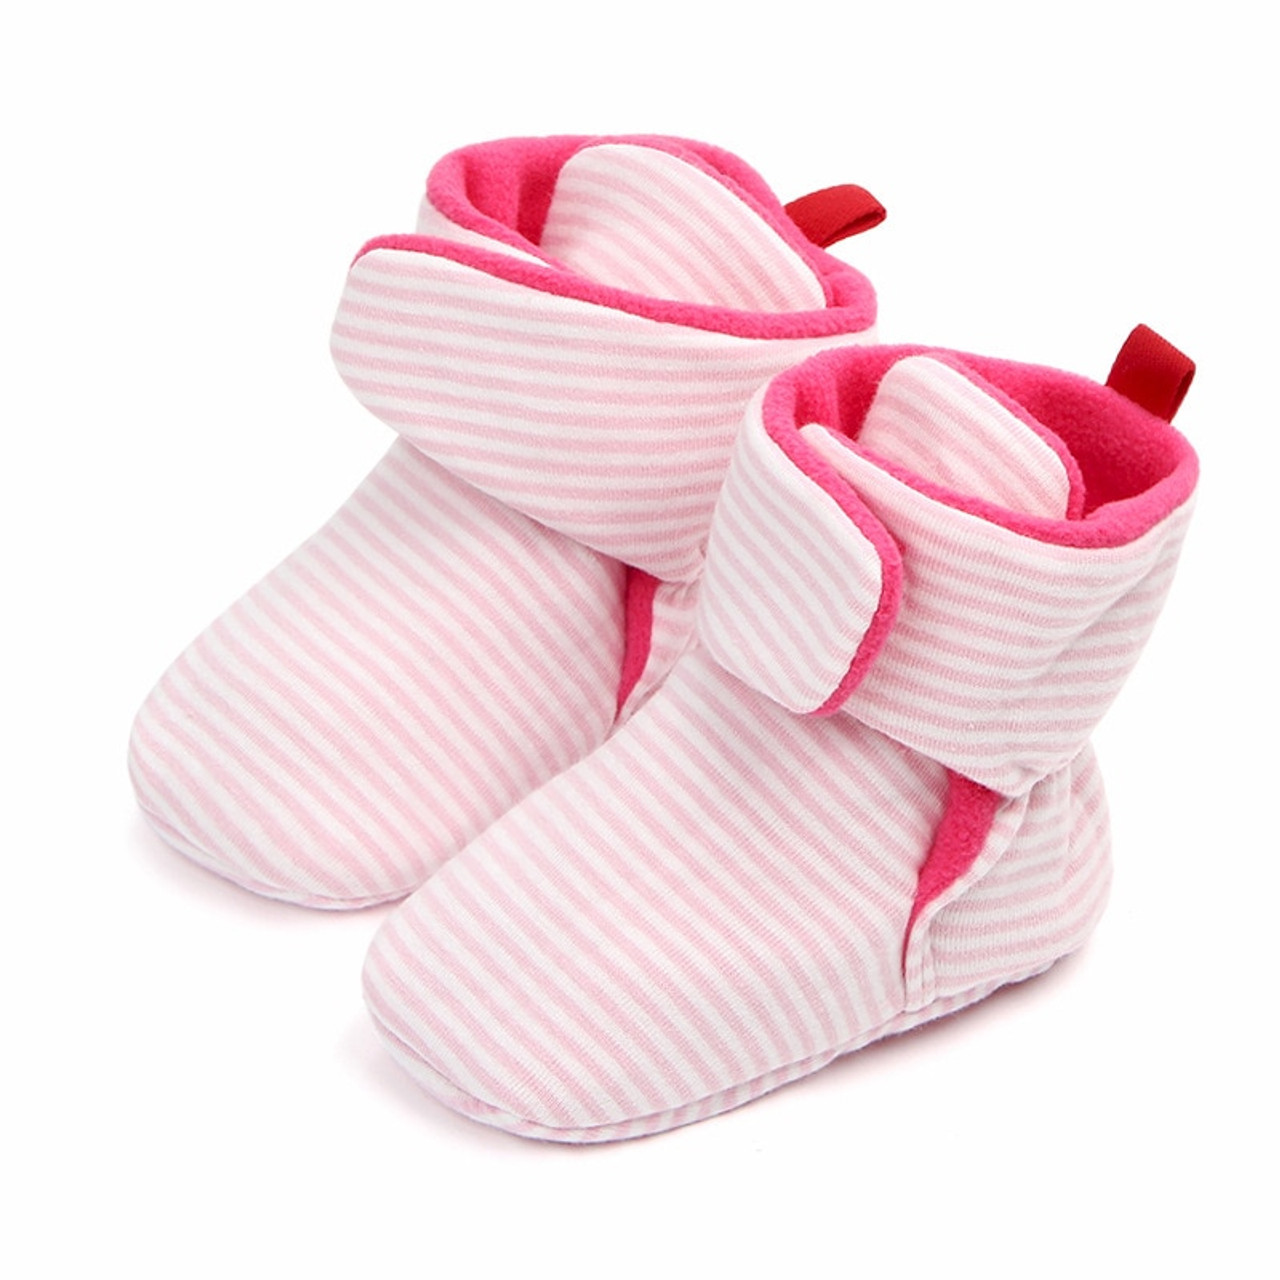 87ed0e496 ... Autumn New High Boots First Walkers 8 Color Baby Shoes Girl Boy 0-1  Years ...